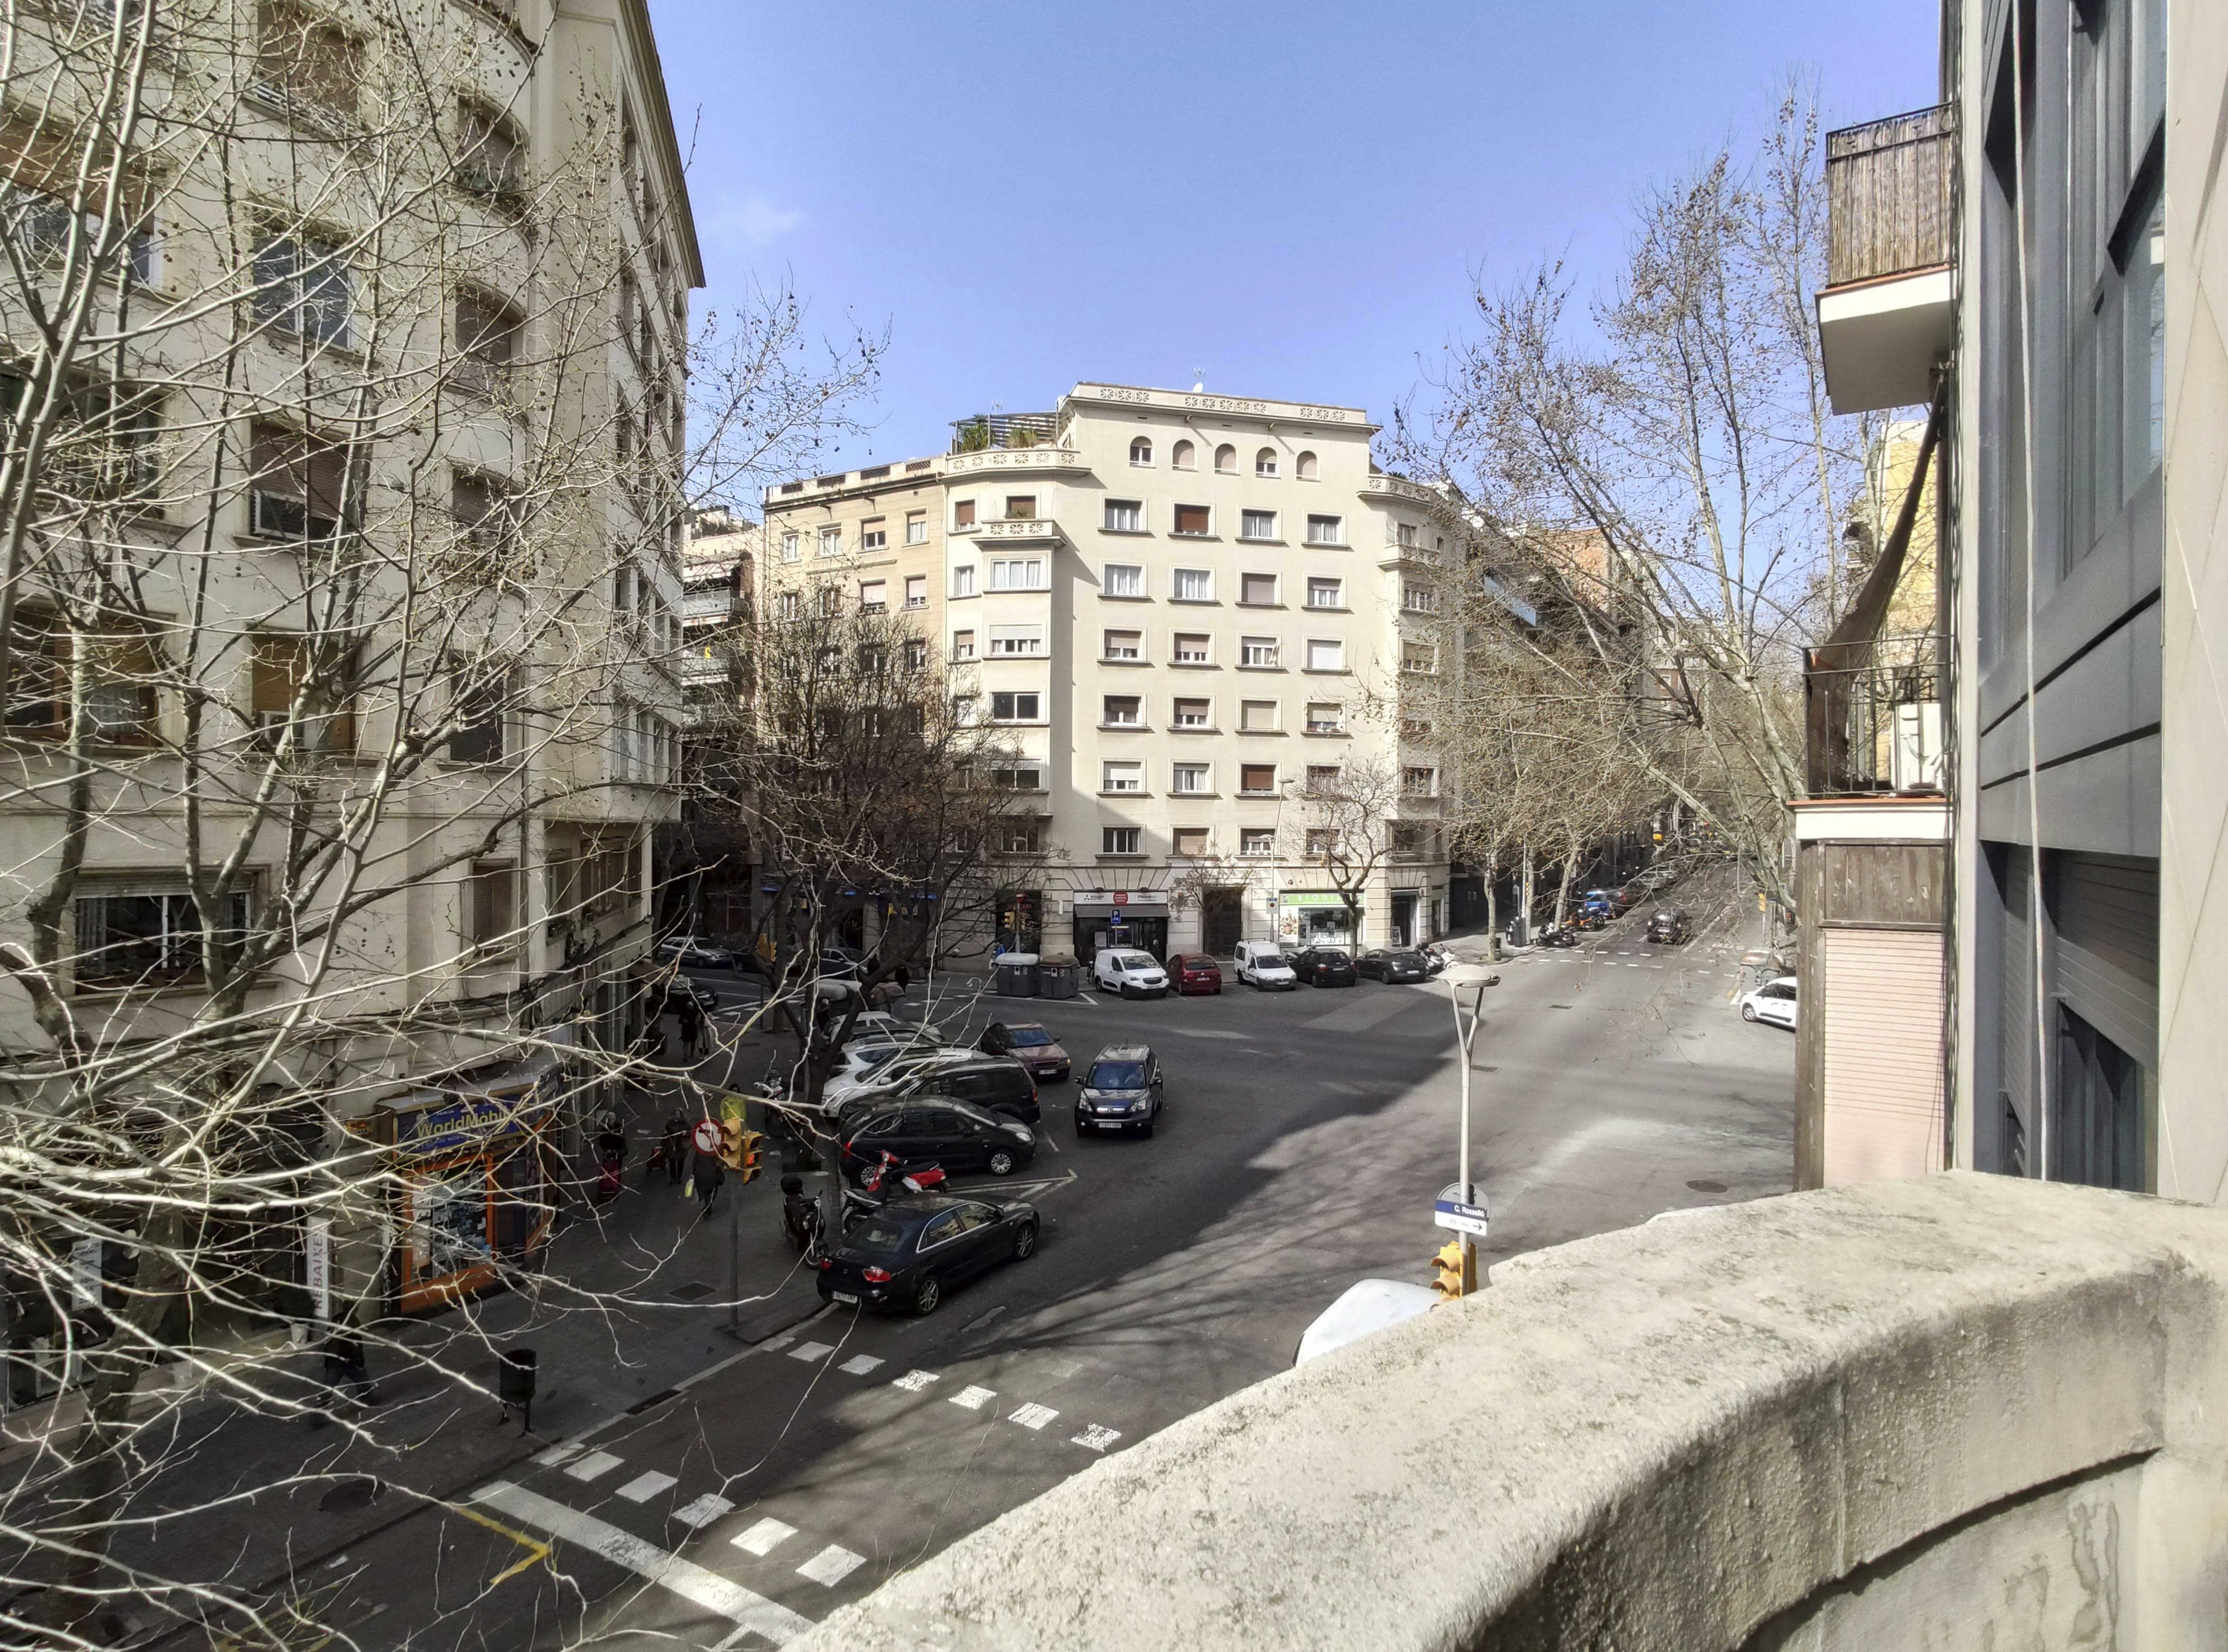 Apartment in Barcelona - eixample. Balcony.3 bedrooms. For sale: 365.000 €.